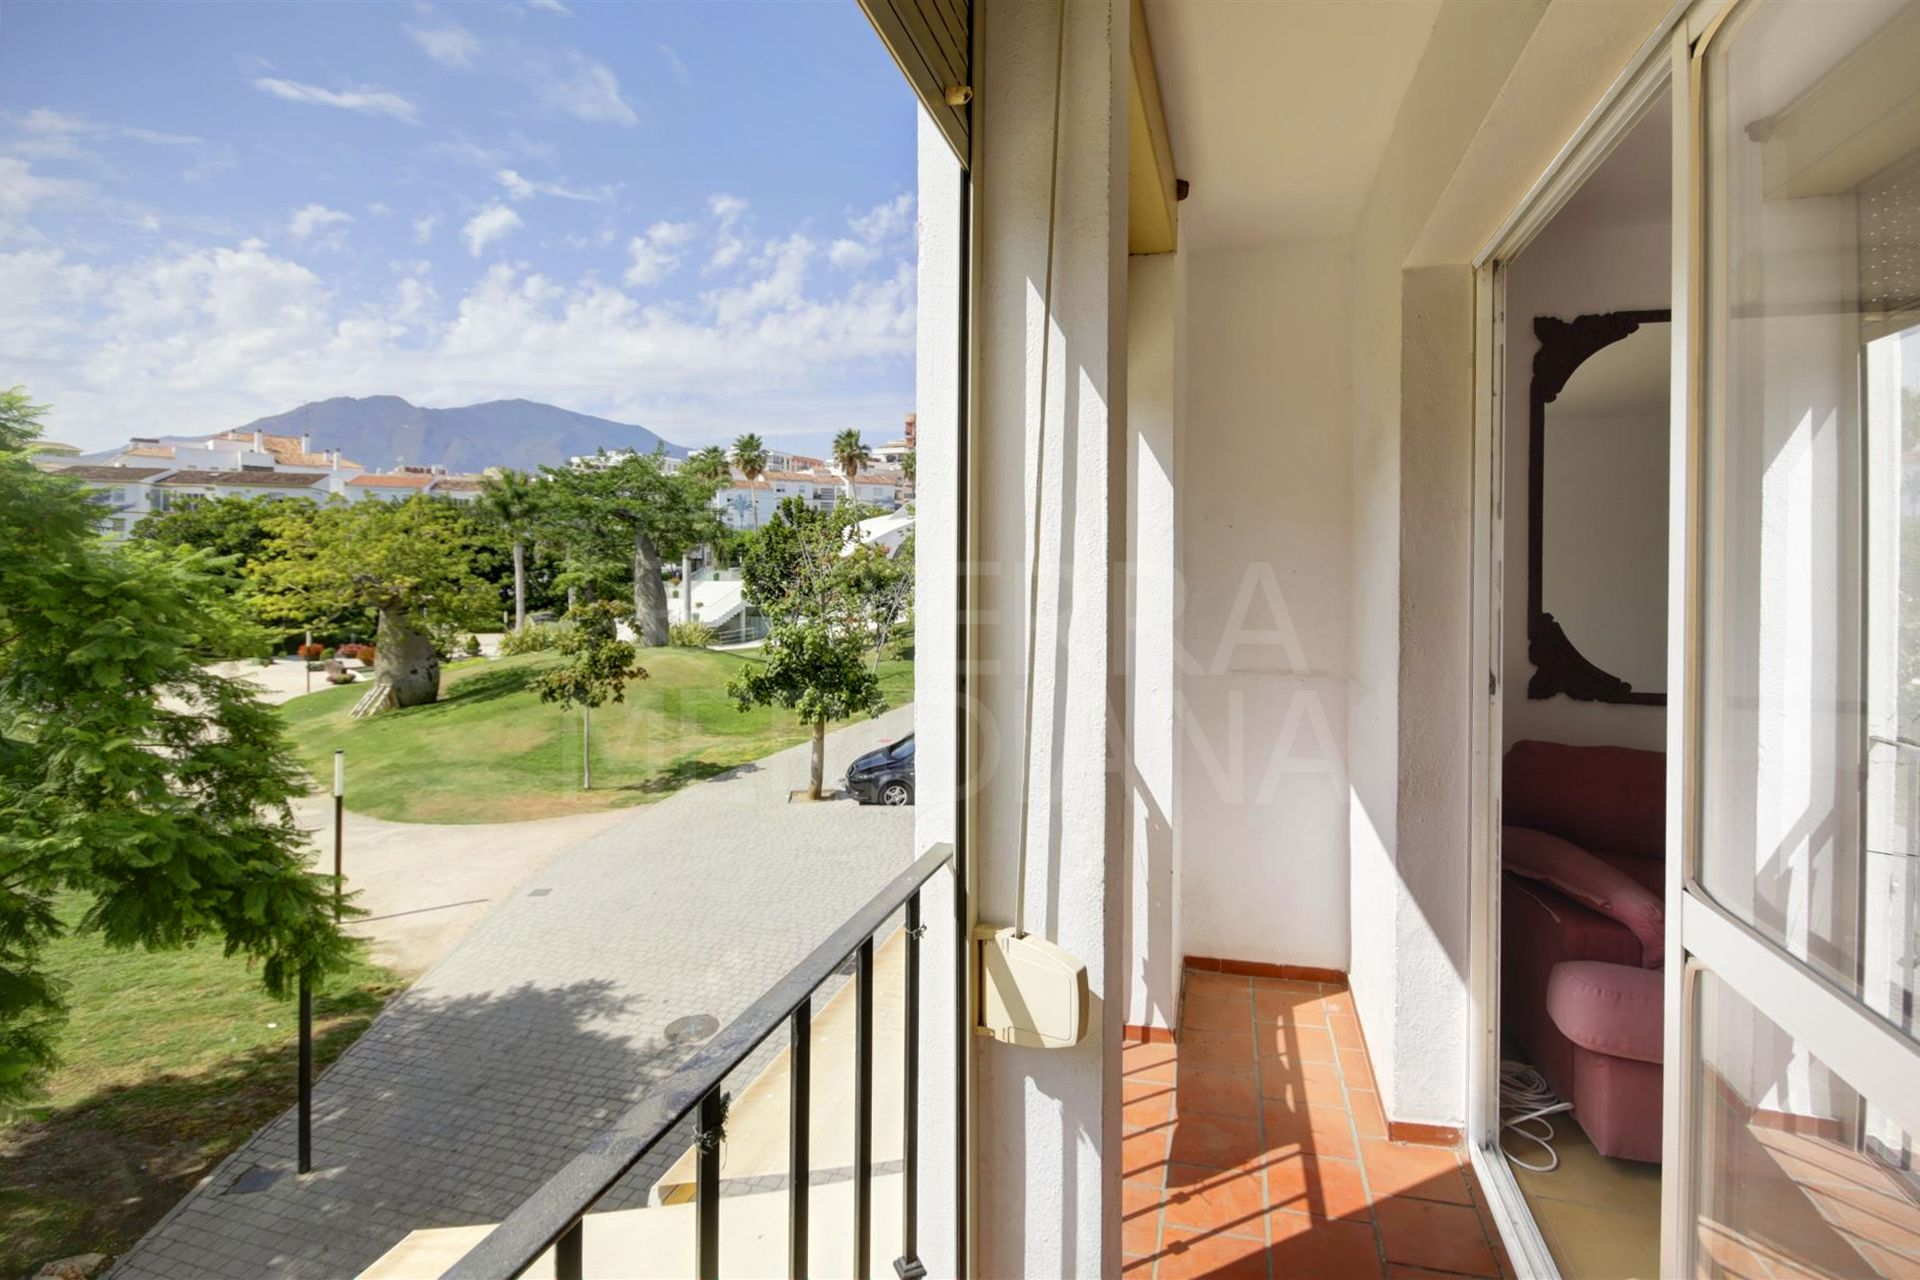 Apartment for sale in the centre of Estepona, opposite the orchidarium and all amenities